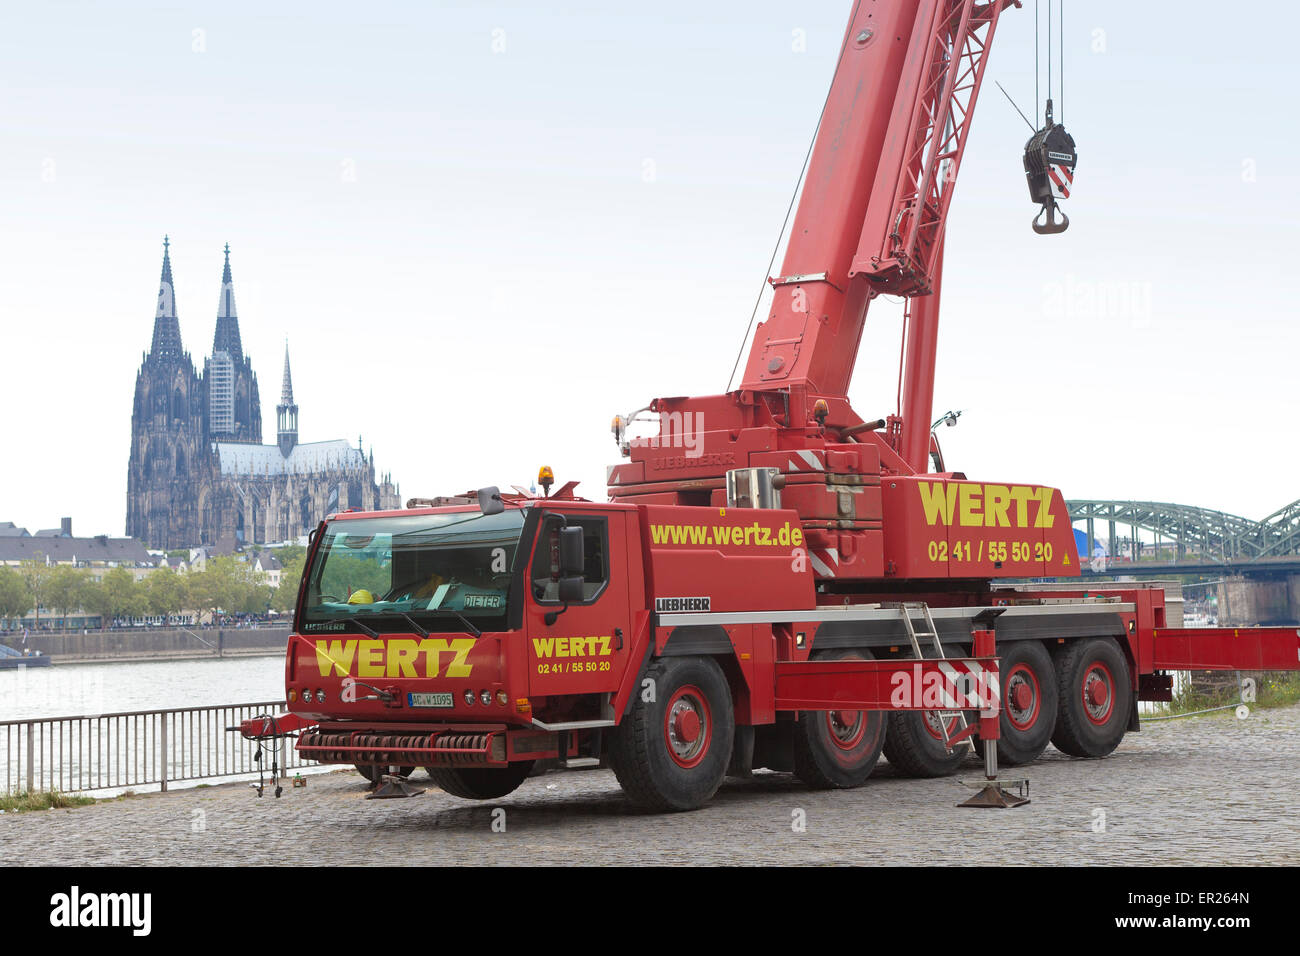 Europe, Germany, North Rhine-Westphalia, Cologne, truck-mounted crane of the company Wertz on the banks of the river - Stock Image